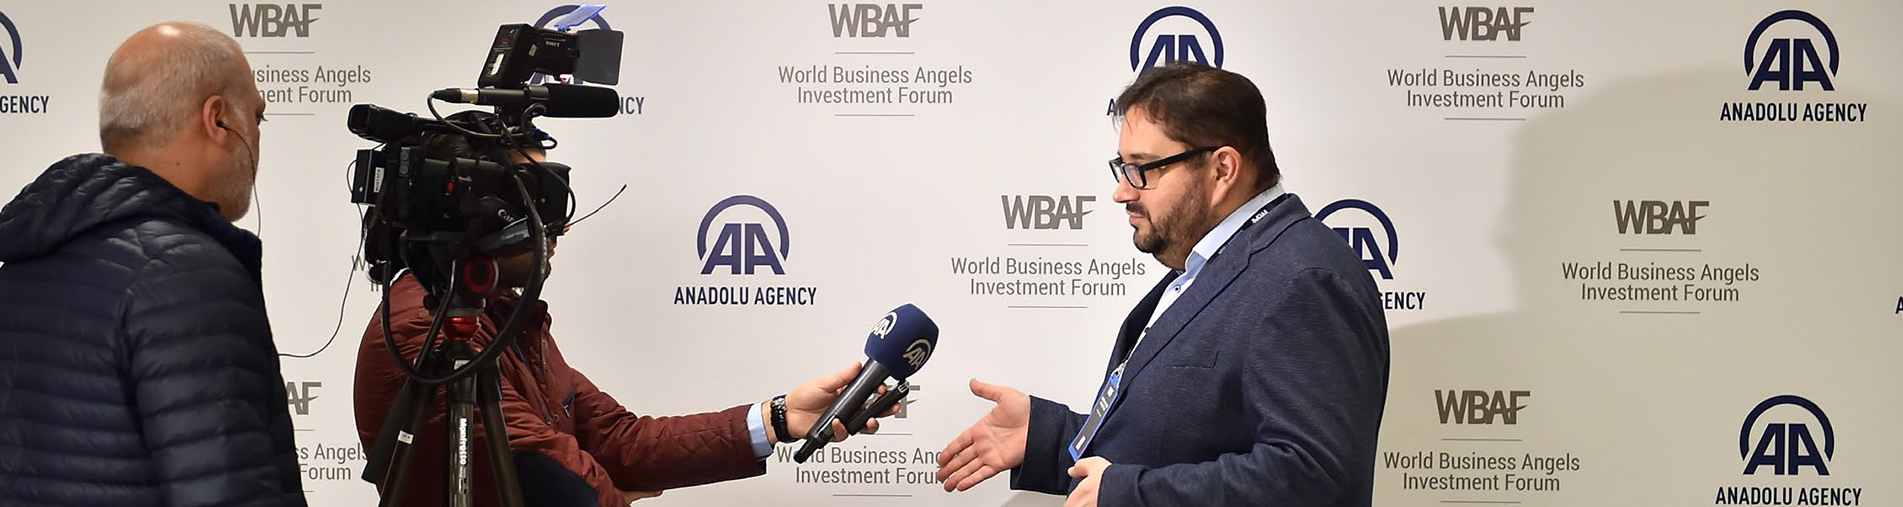 World Business Angel Investment Forum